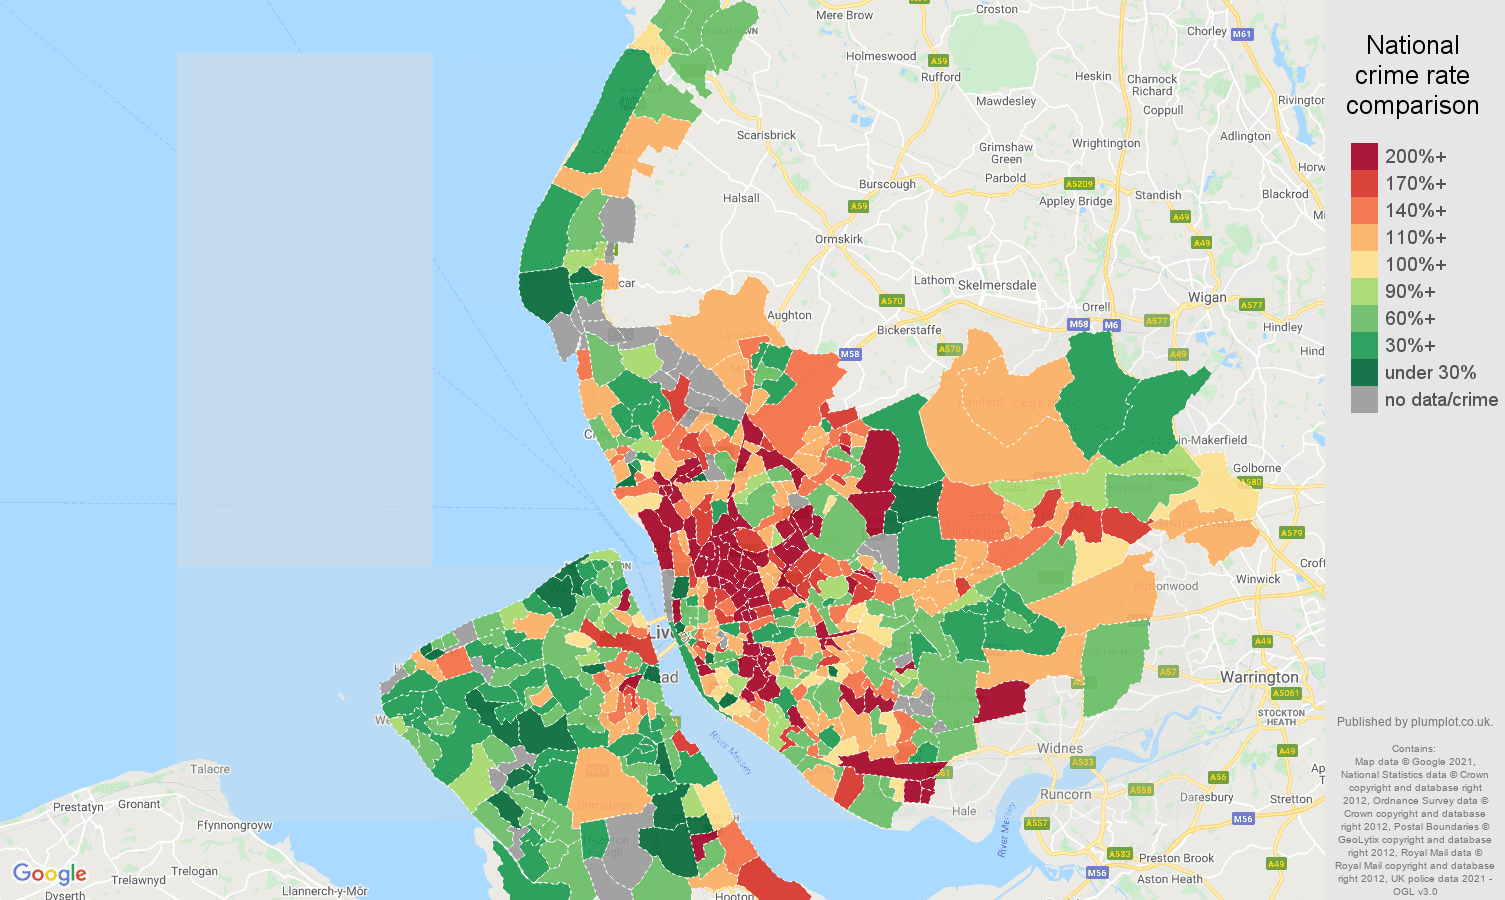 Merseyside burglary crime rate comparison map